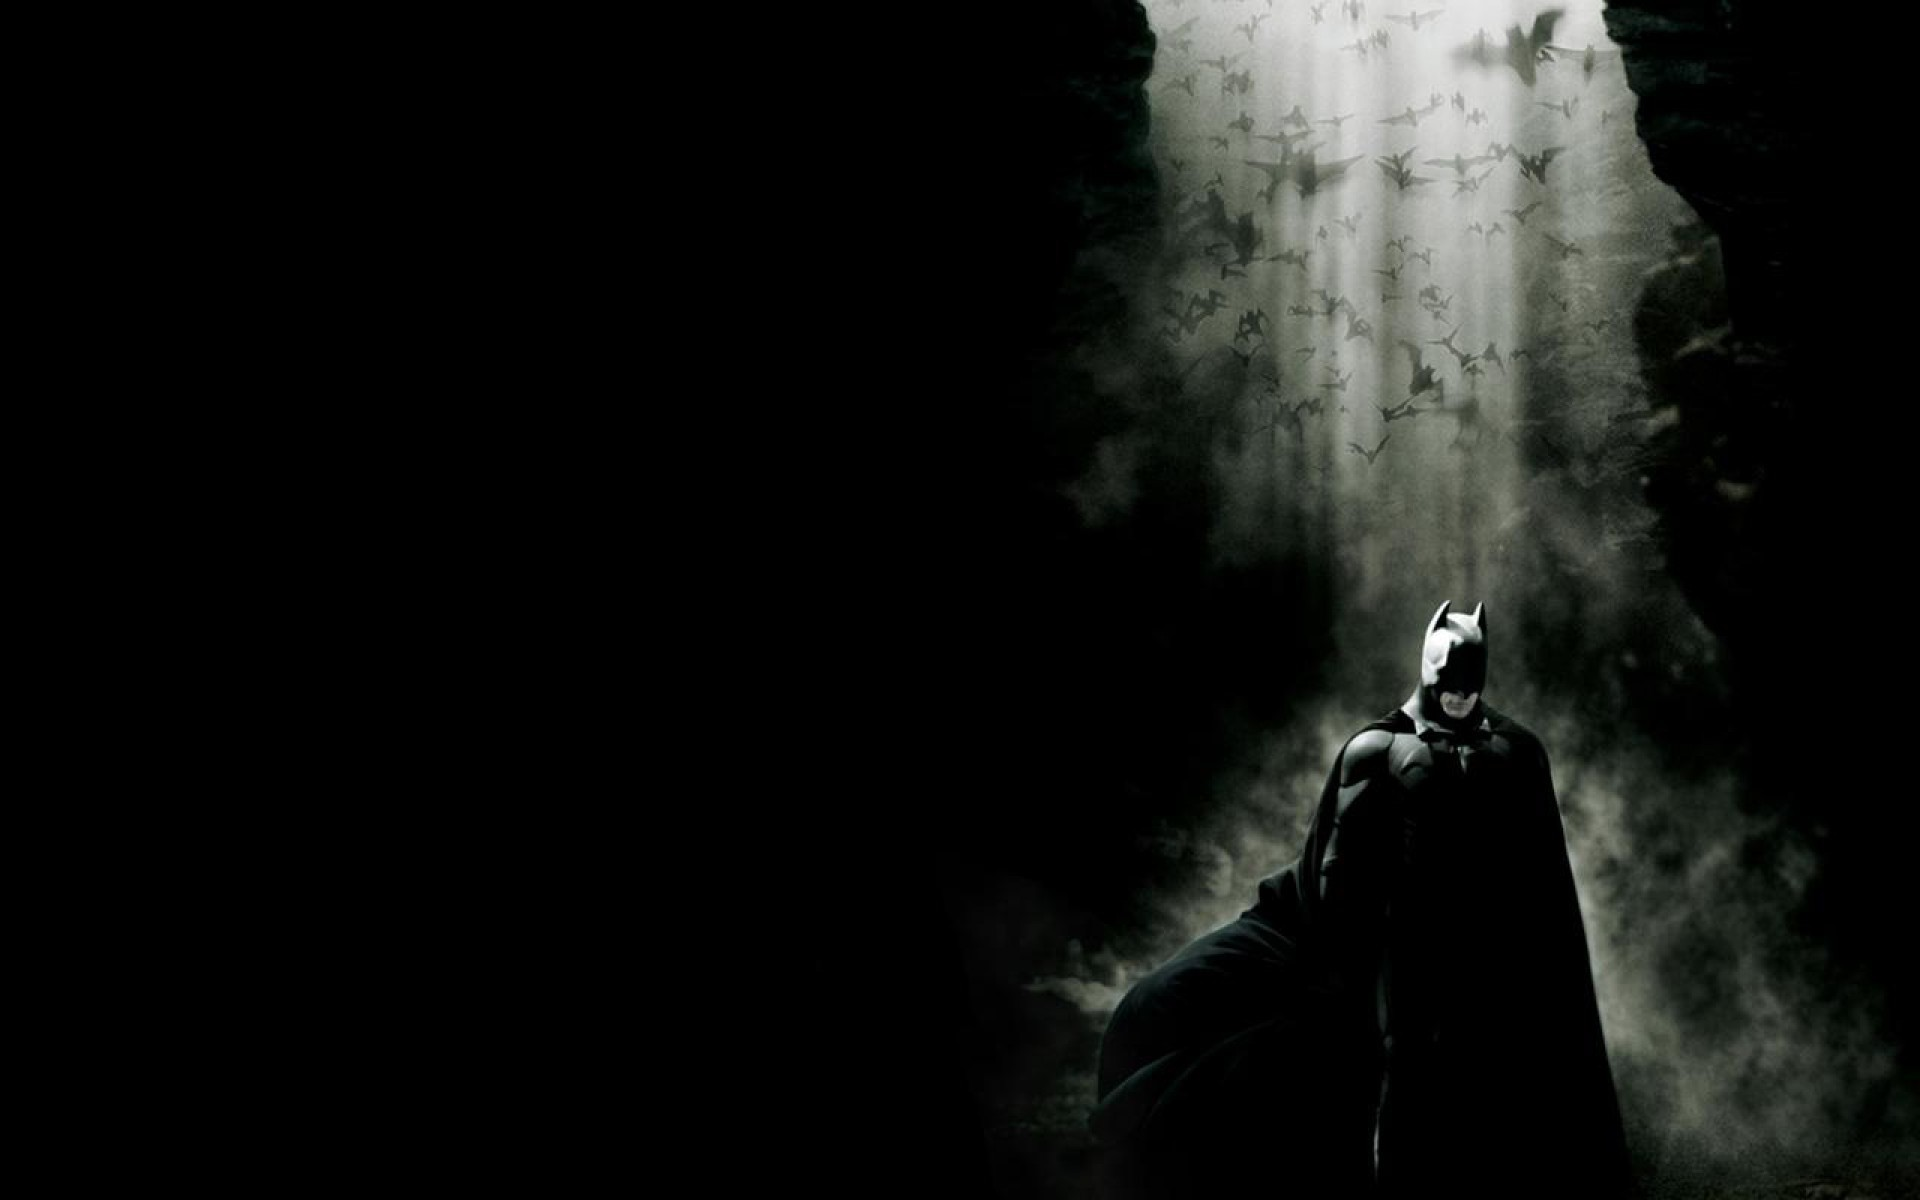 Batman Hd Wallpaper Download Free High Resolution Backgrounds